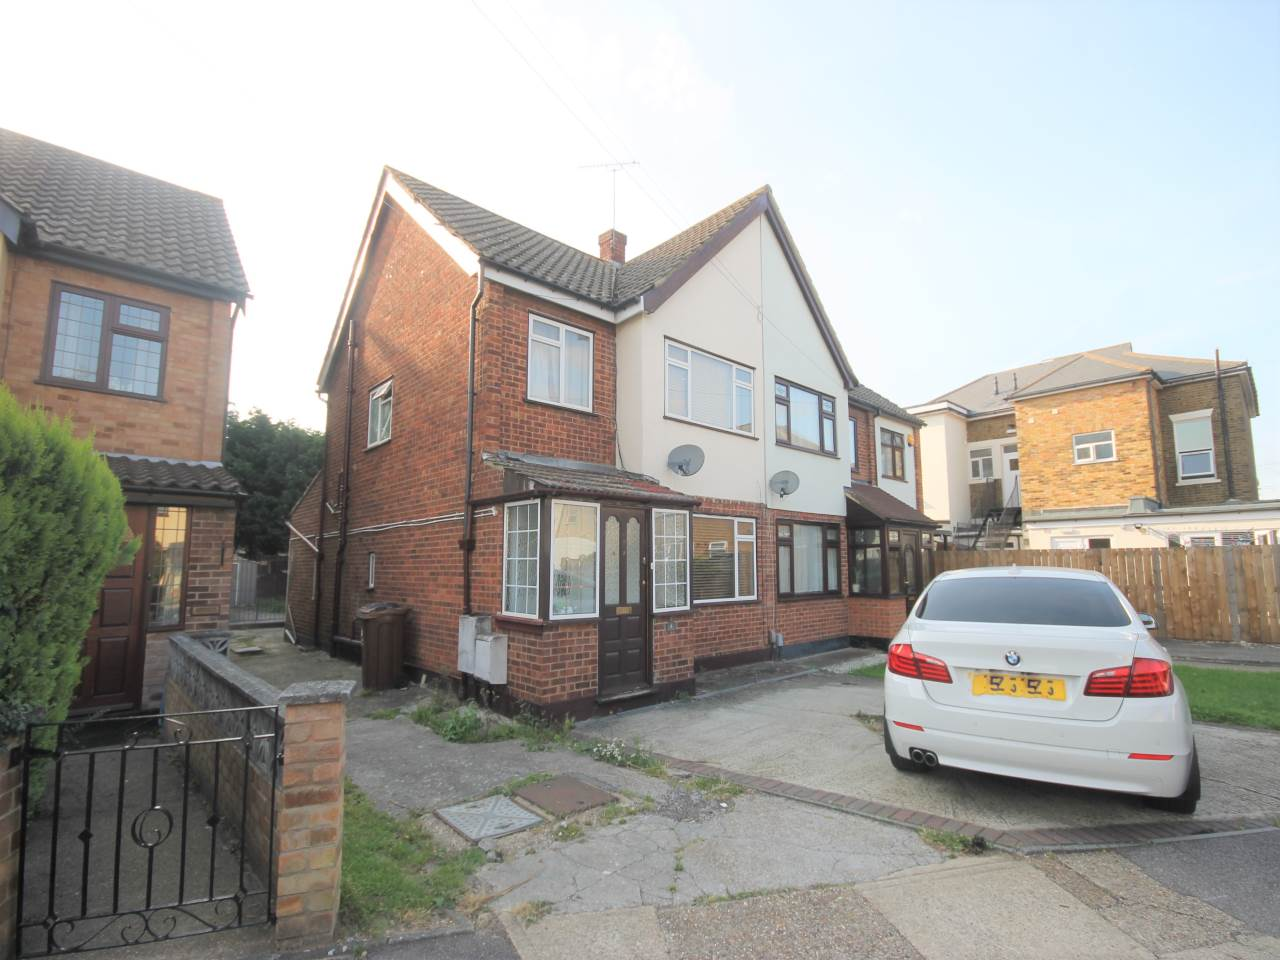 3 bed house to rent in Chadwell Heath 0